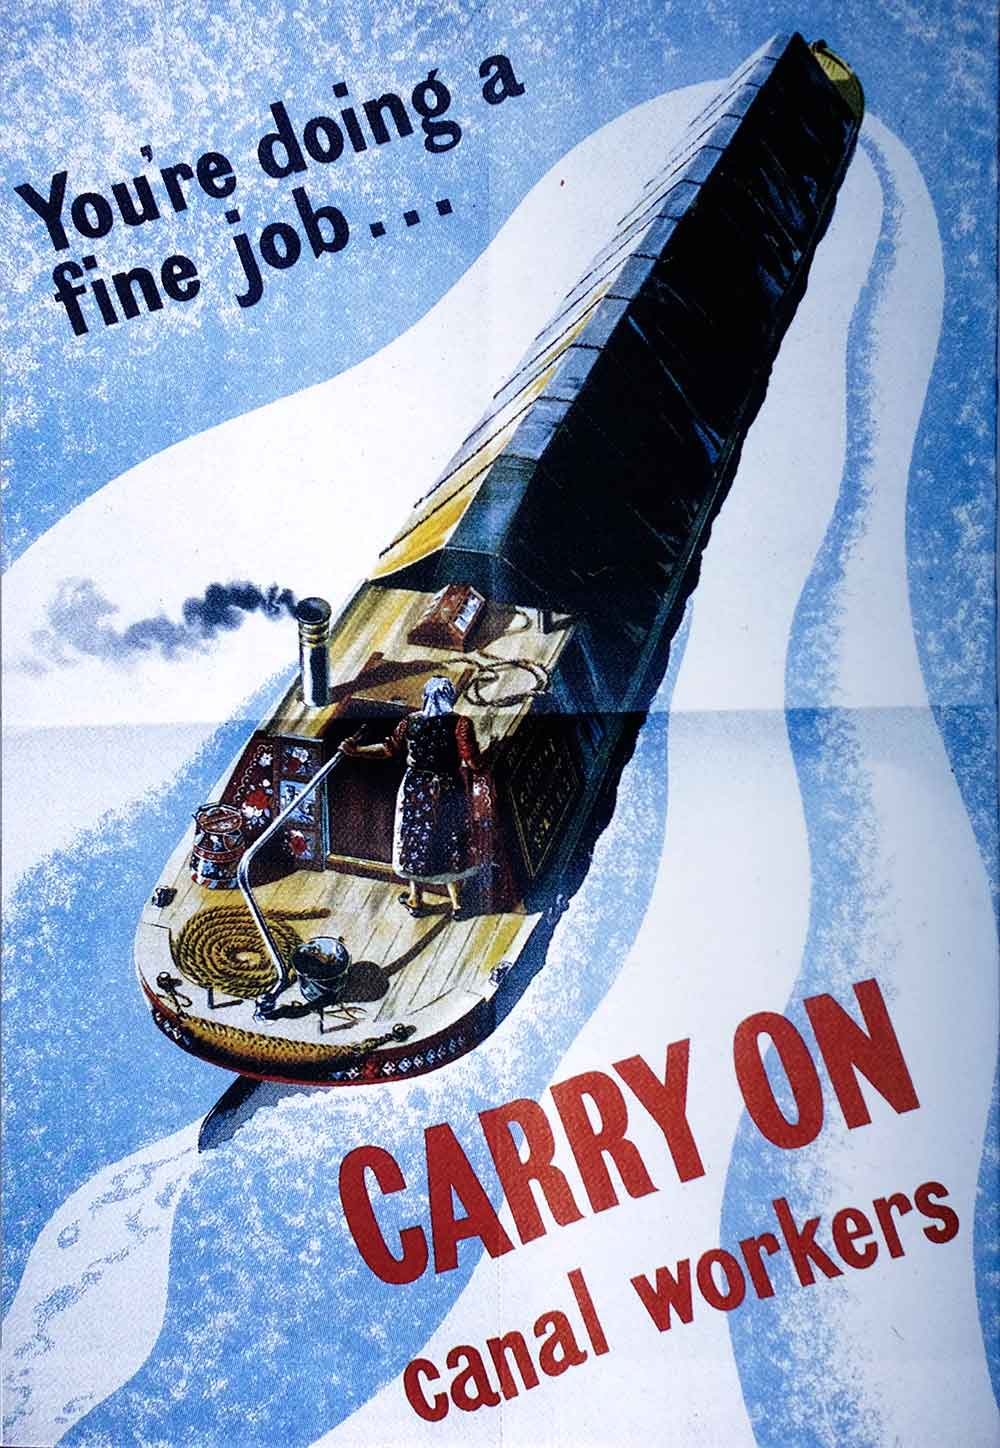 WW2 poster, showing a canal boat with text saying You're doing a find job...carry on canal workers